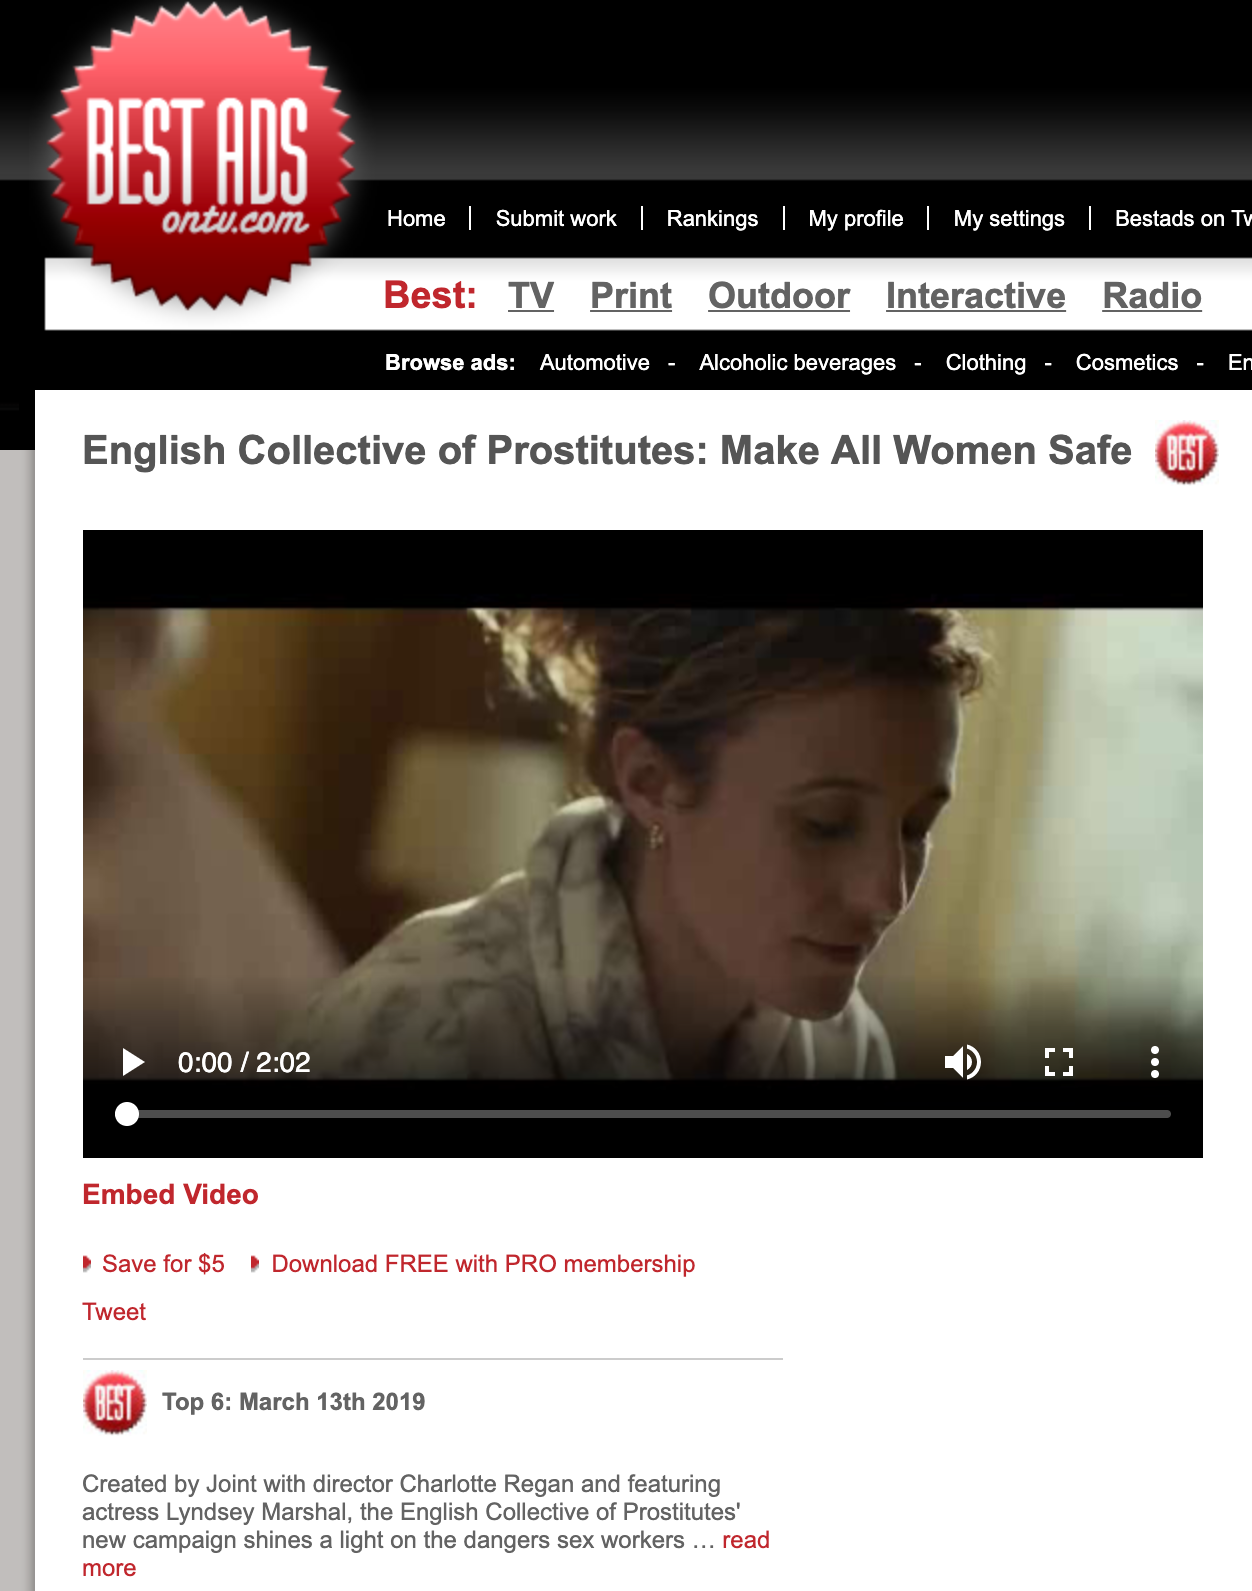 screencapture-bestadsontv-ad-102530-English-Collective-of-Prostitutes-Make-All-Women-Safe-2019-07-21-18_42_10.png